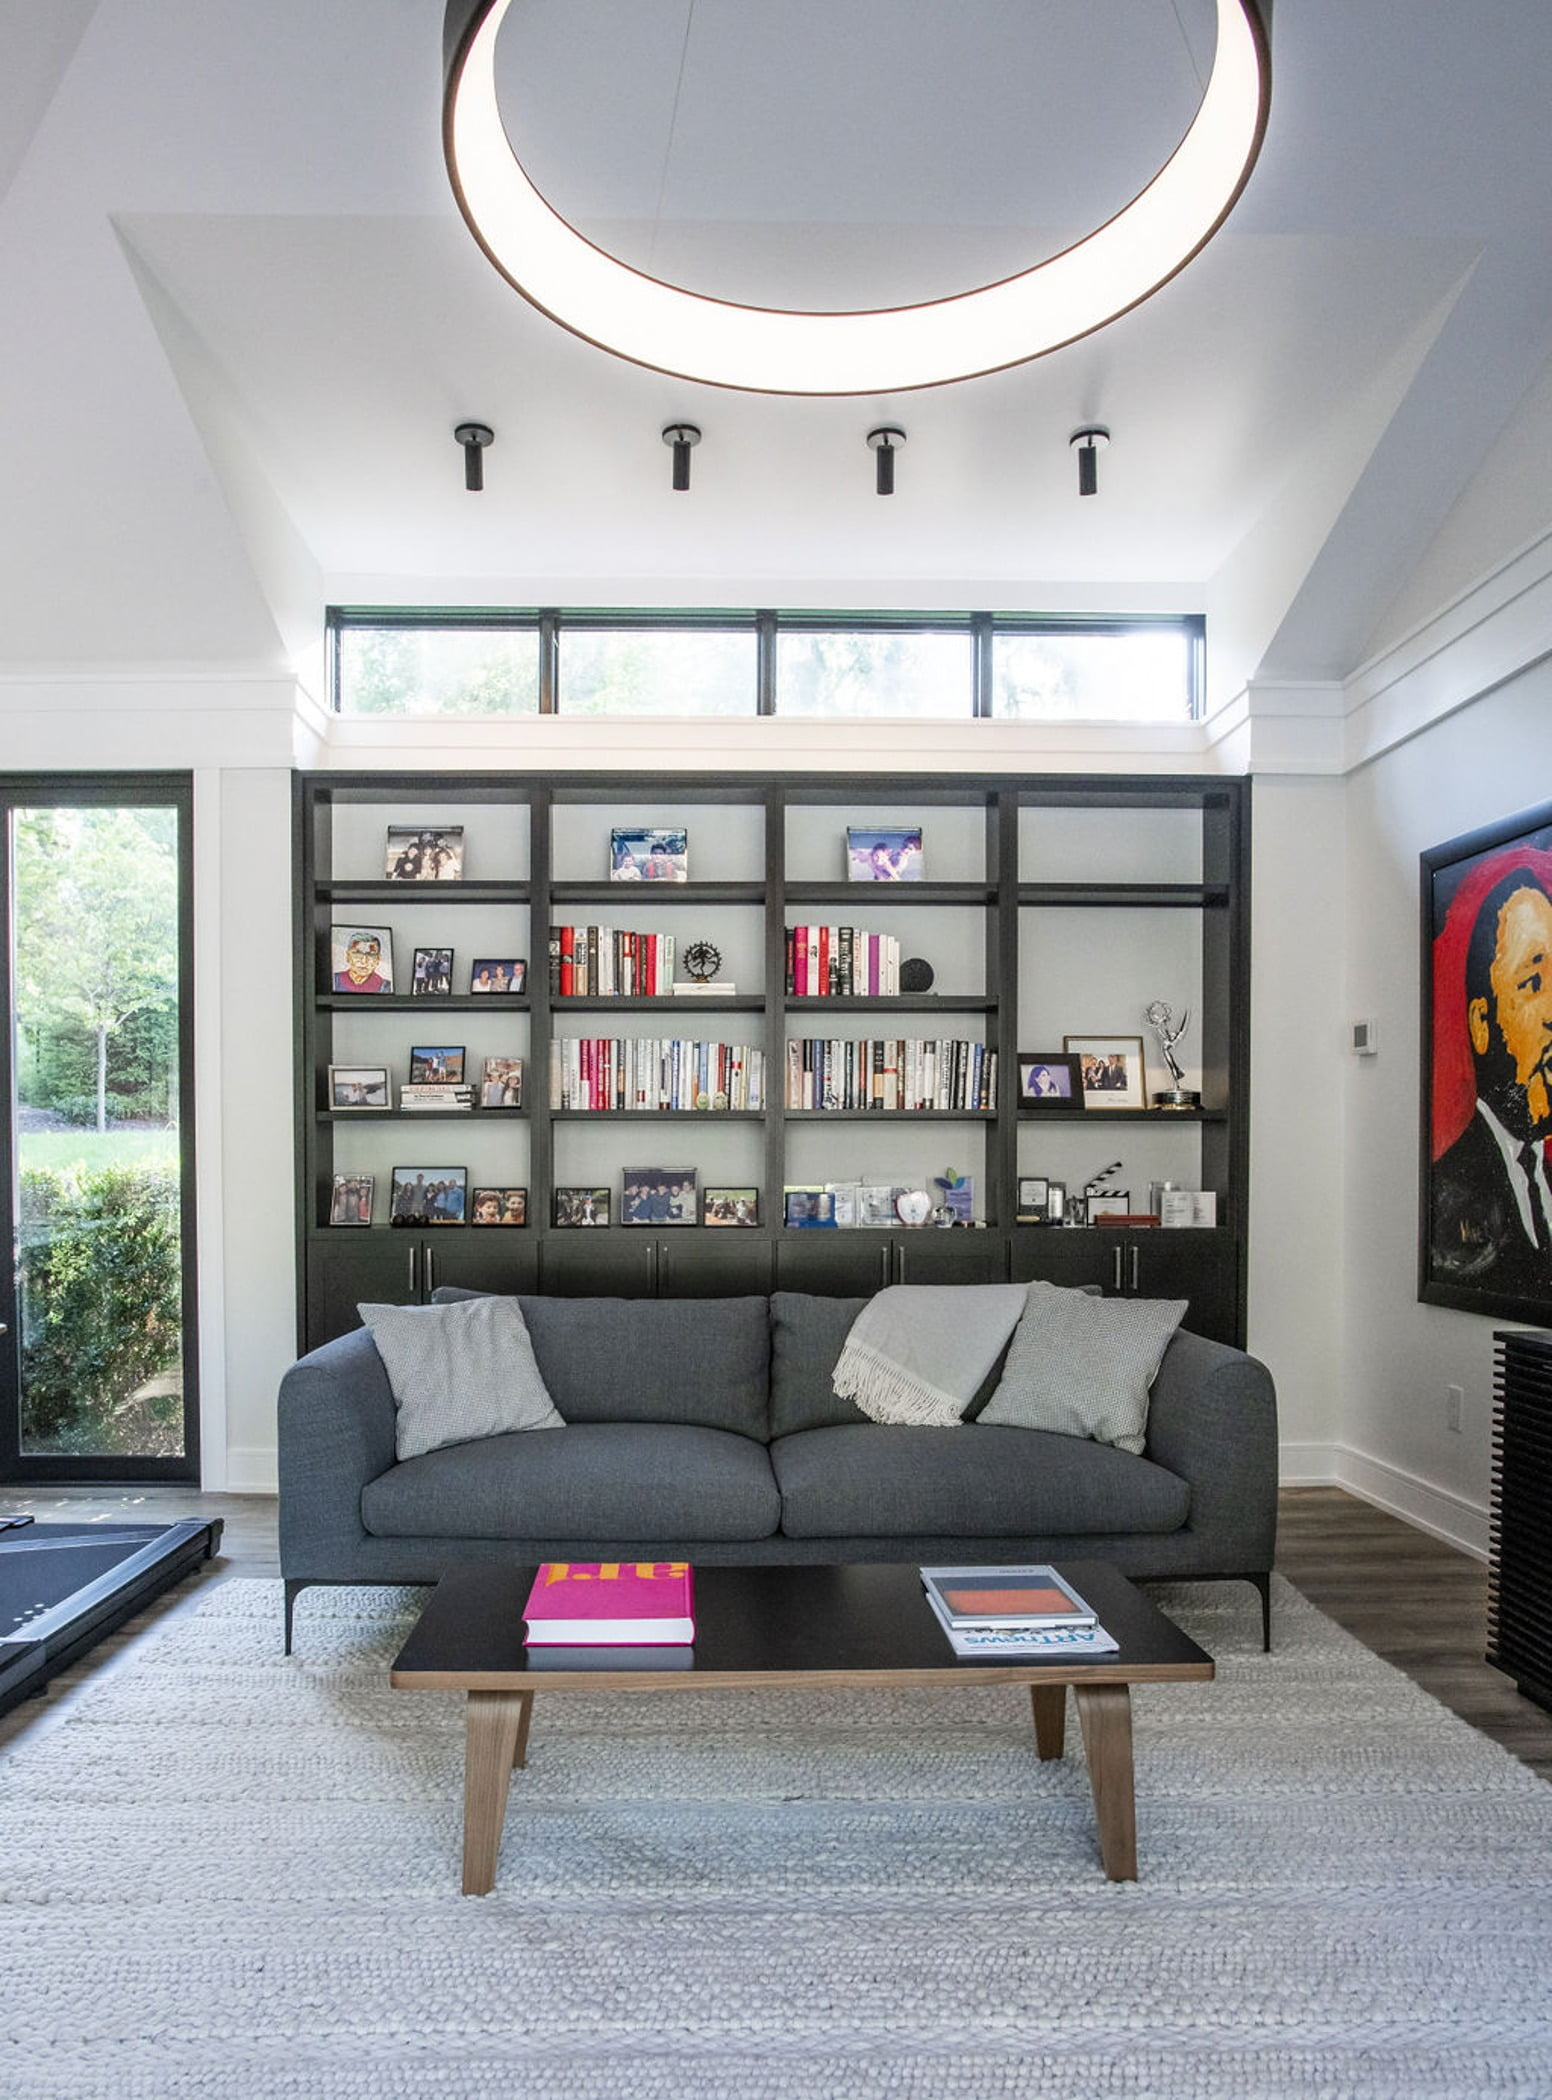 Modern office space with floor to ceiling windows, built in wall shelves and minimalistic furniture (Couch view)